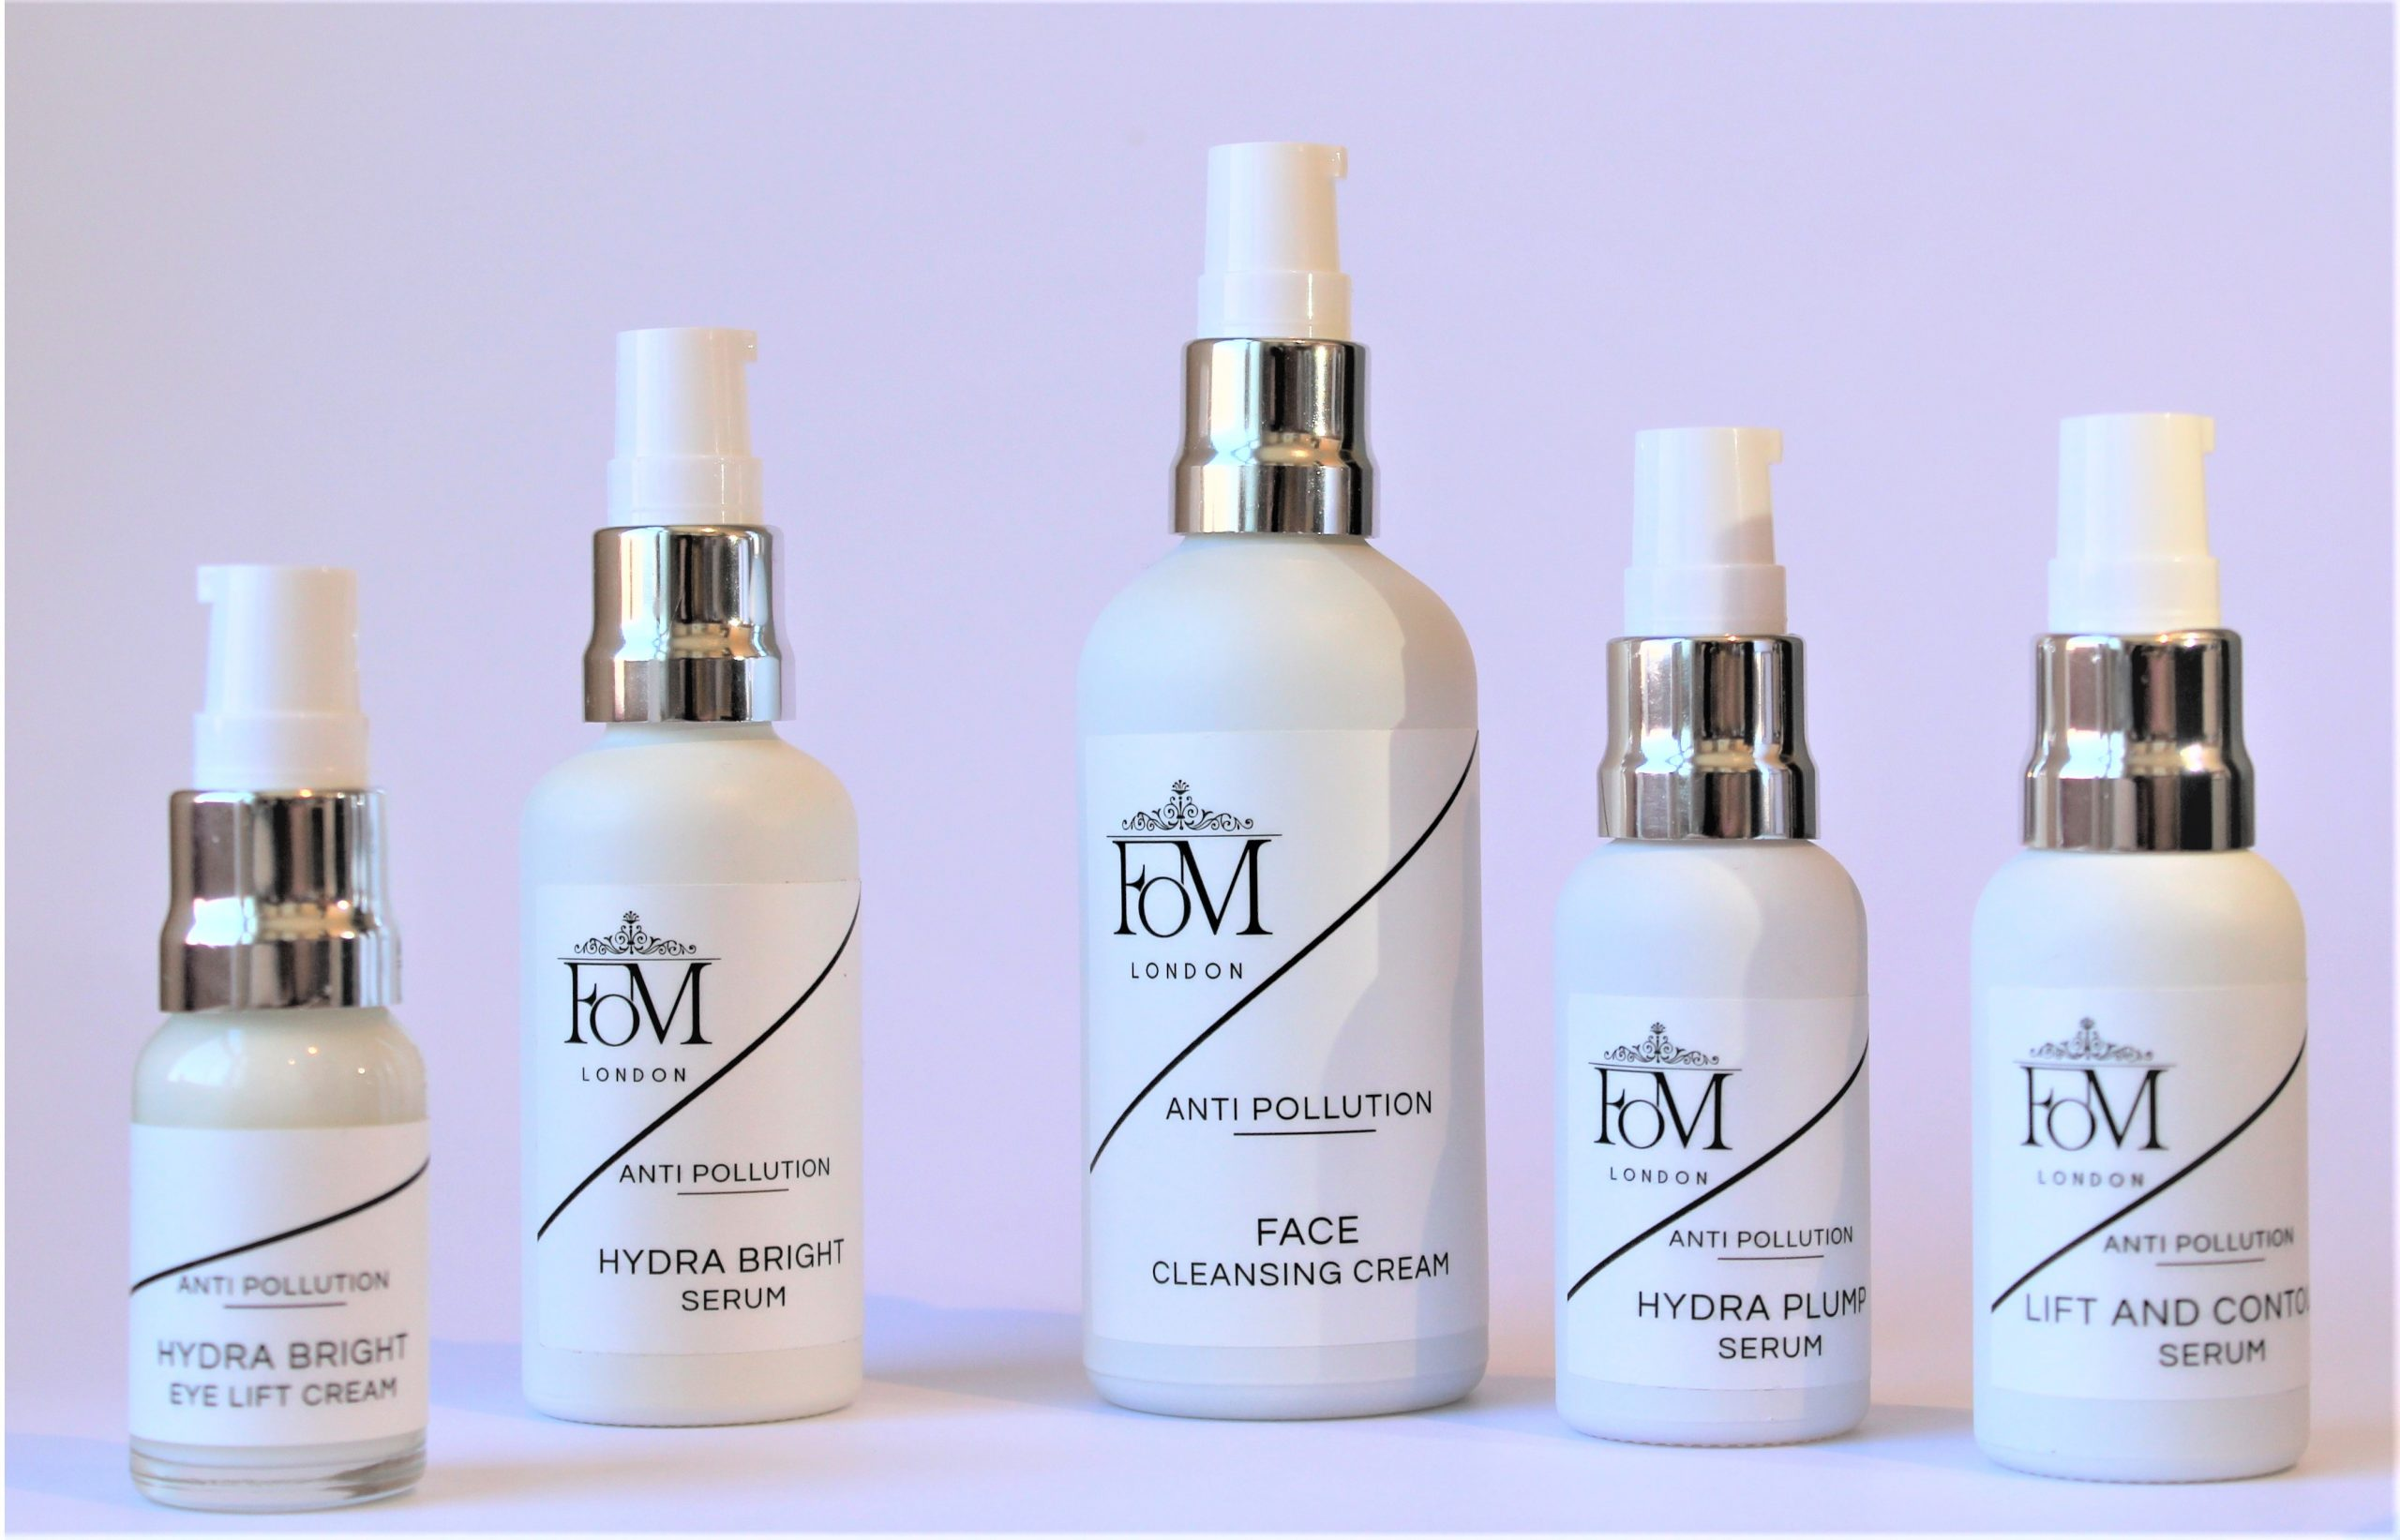 FOM London skincare gifts and sets